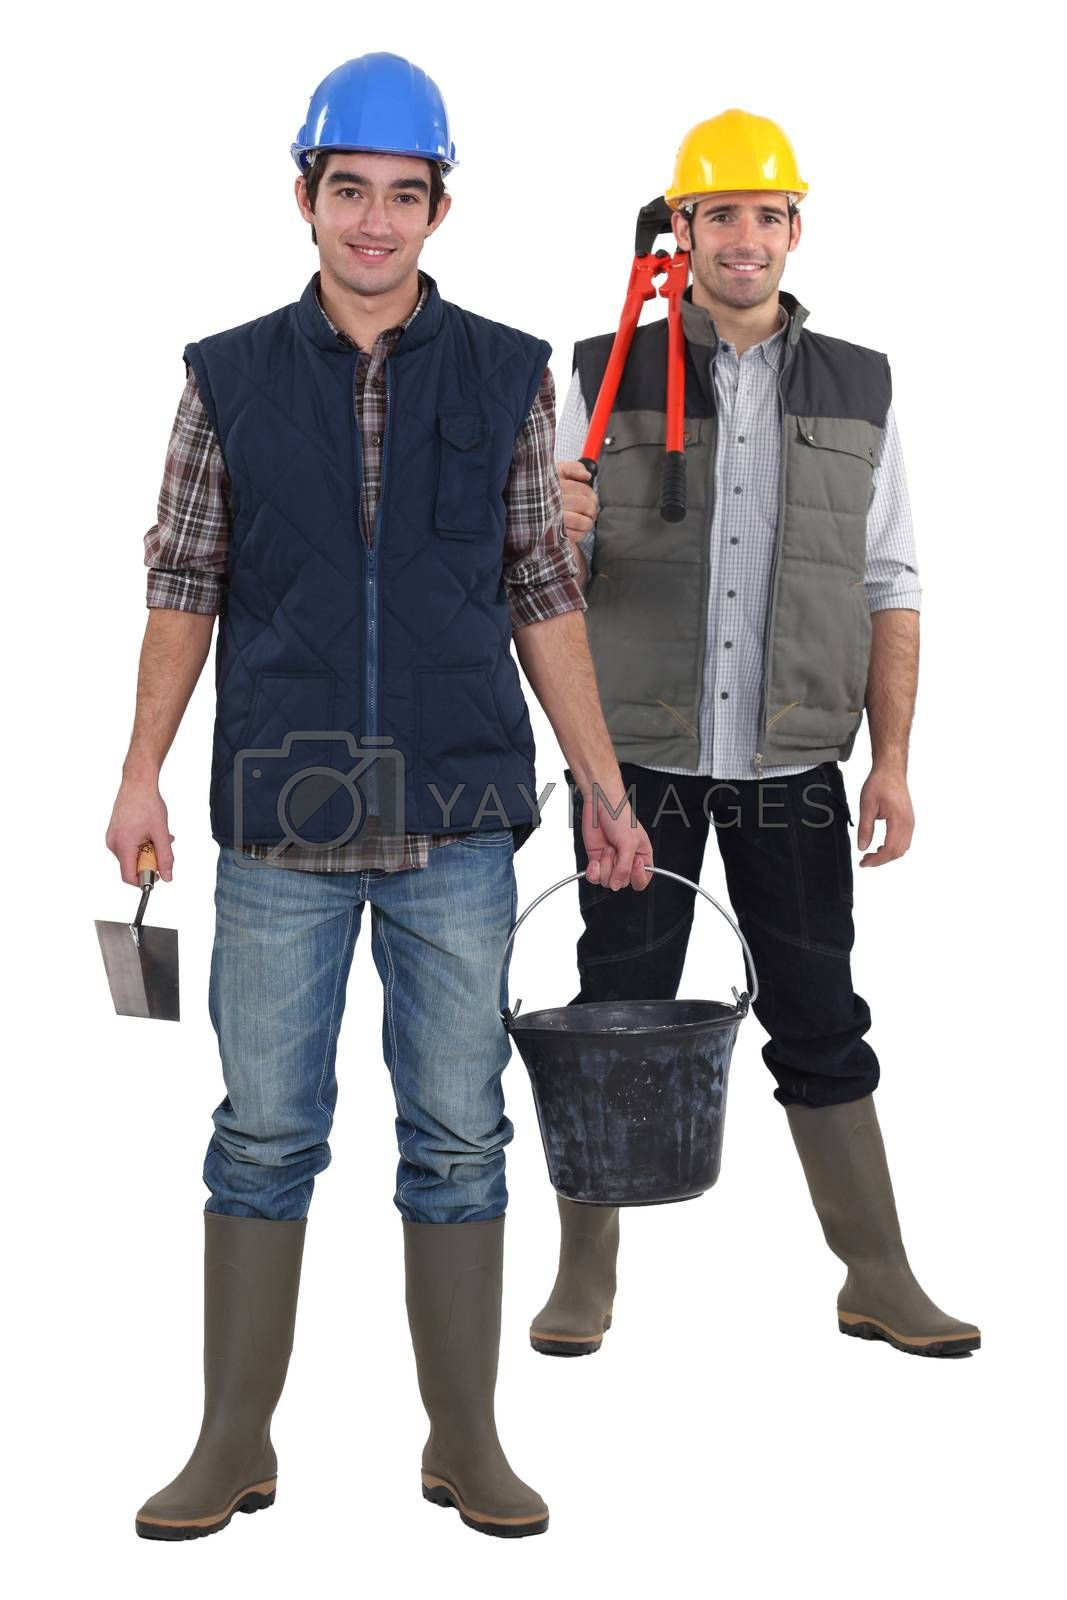 Two constructions workers stood together